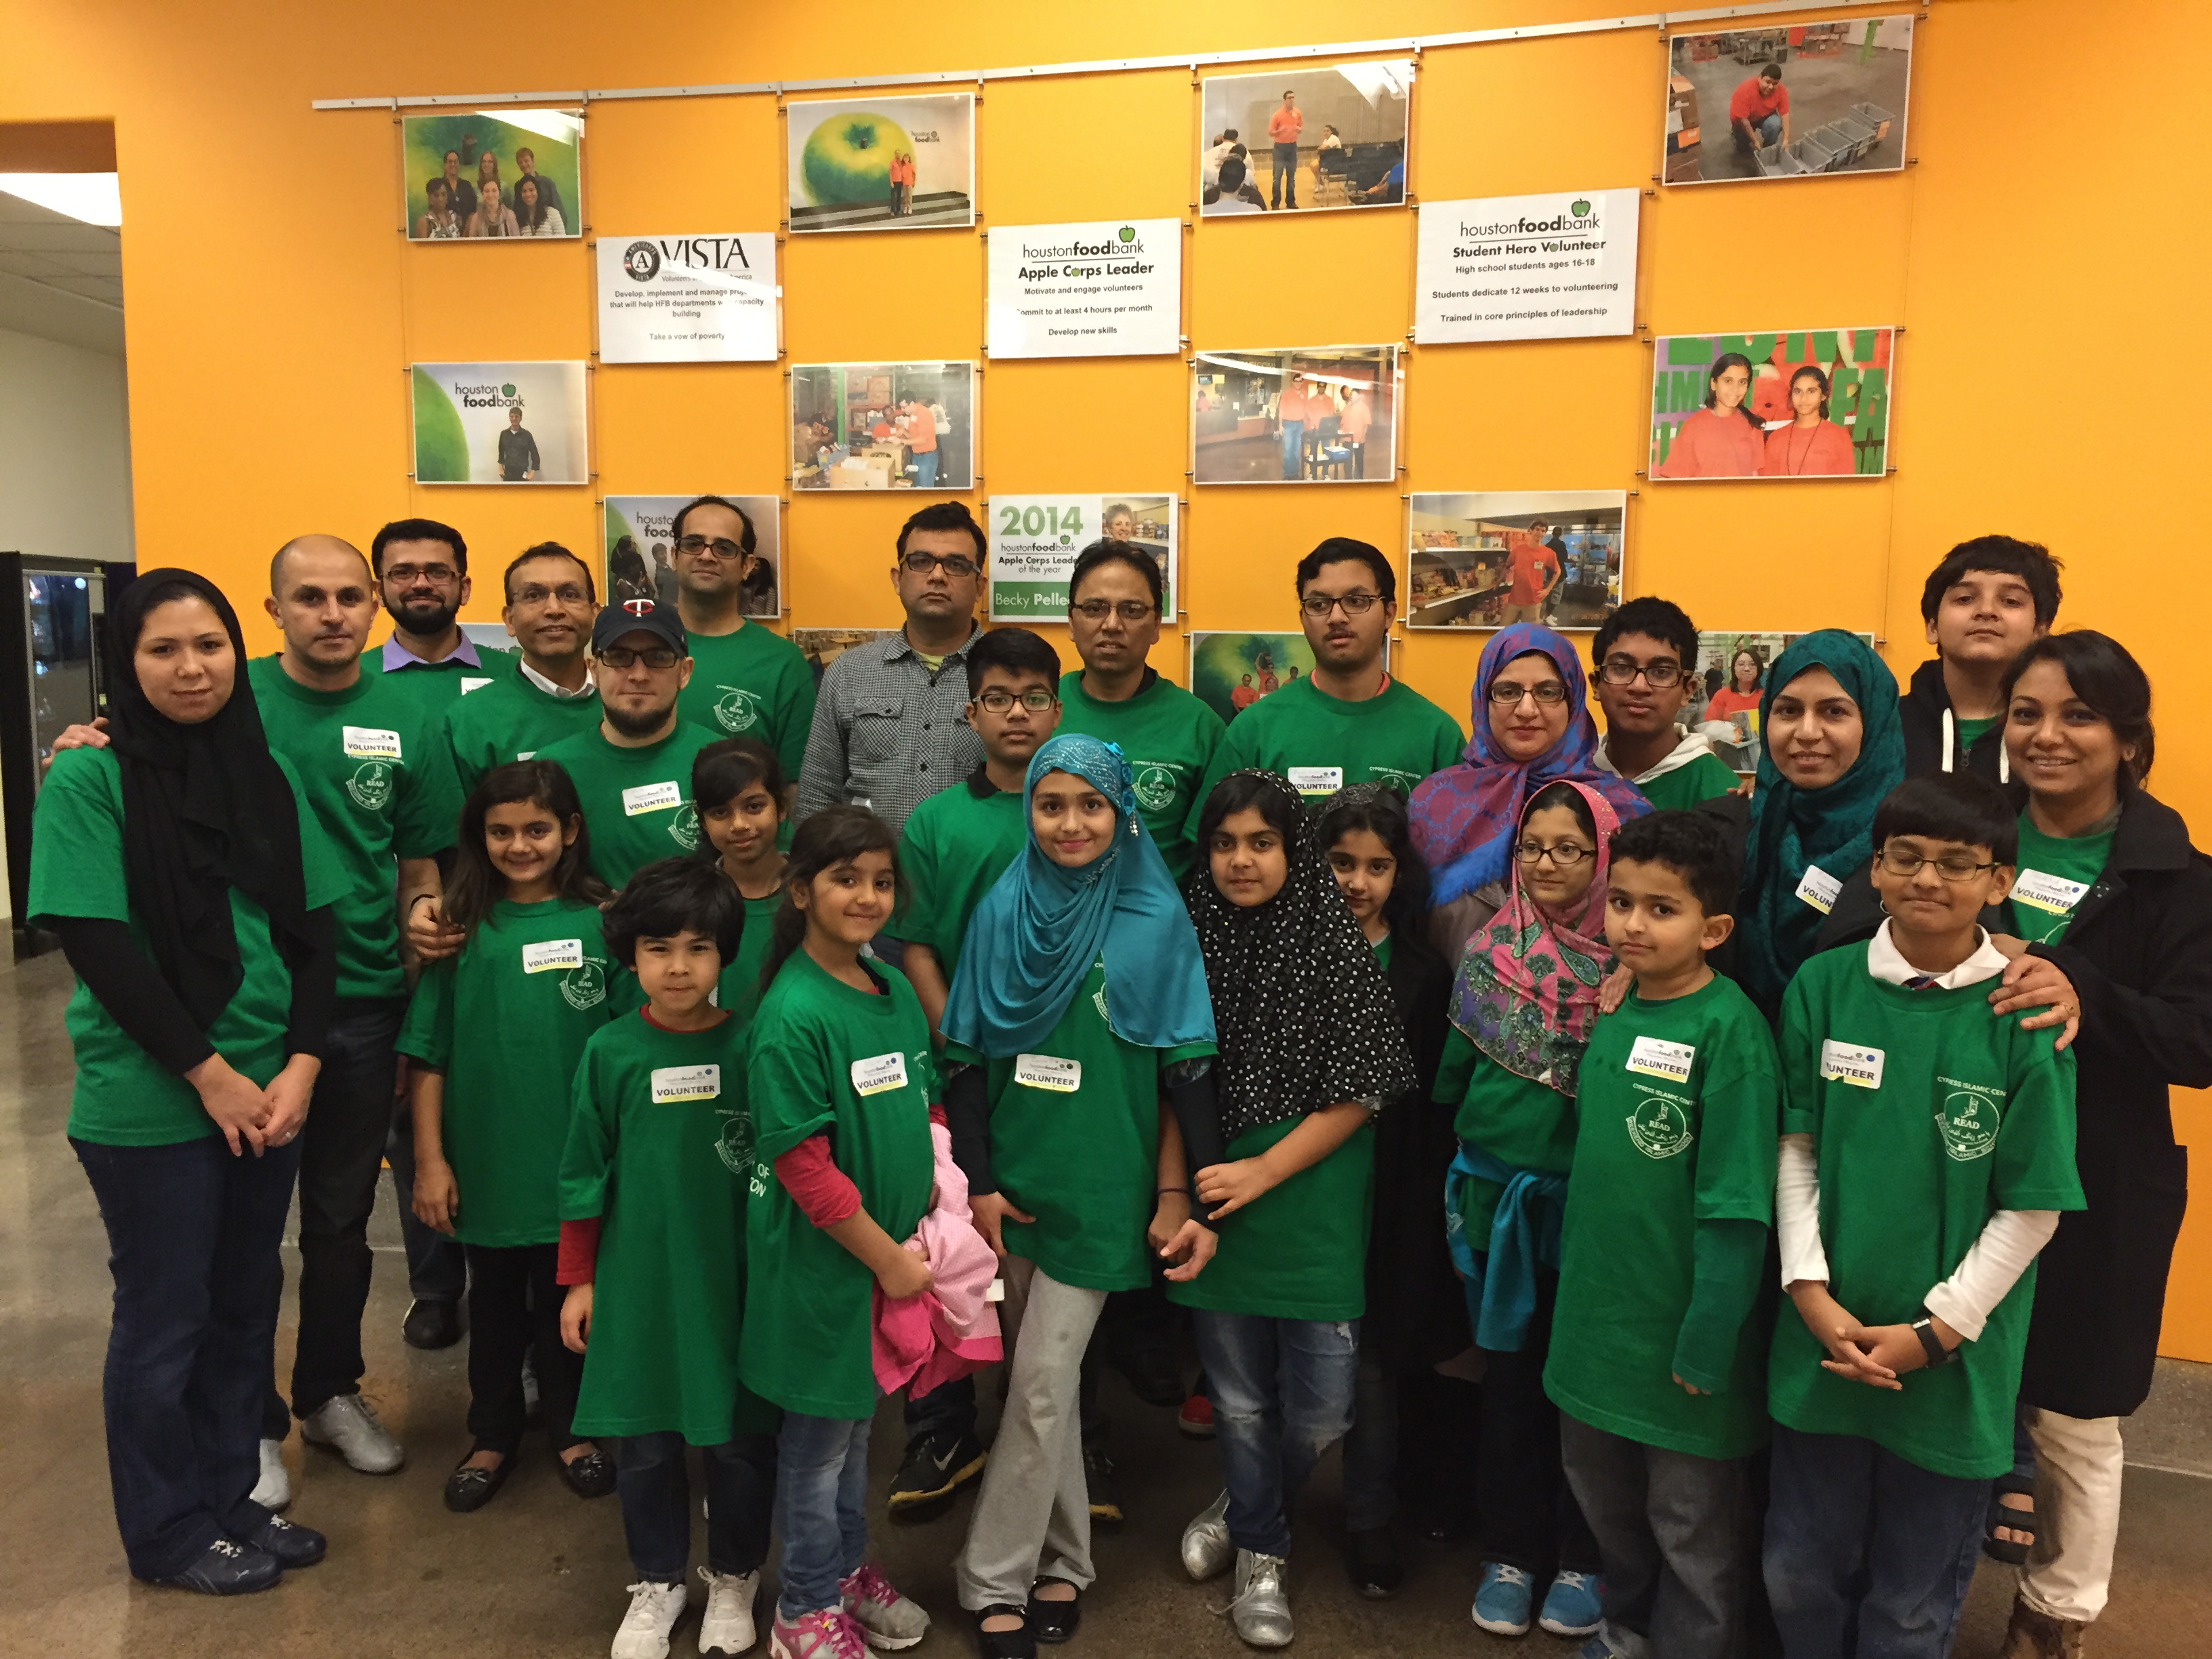 Group Photo of Cypress Islamic Center Volunteers at Houston Food bank